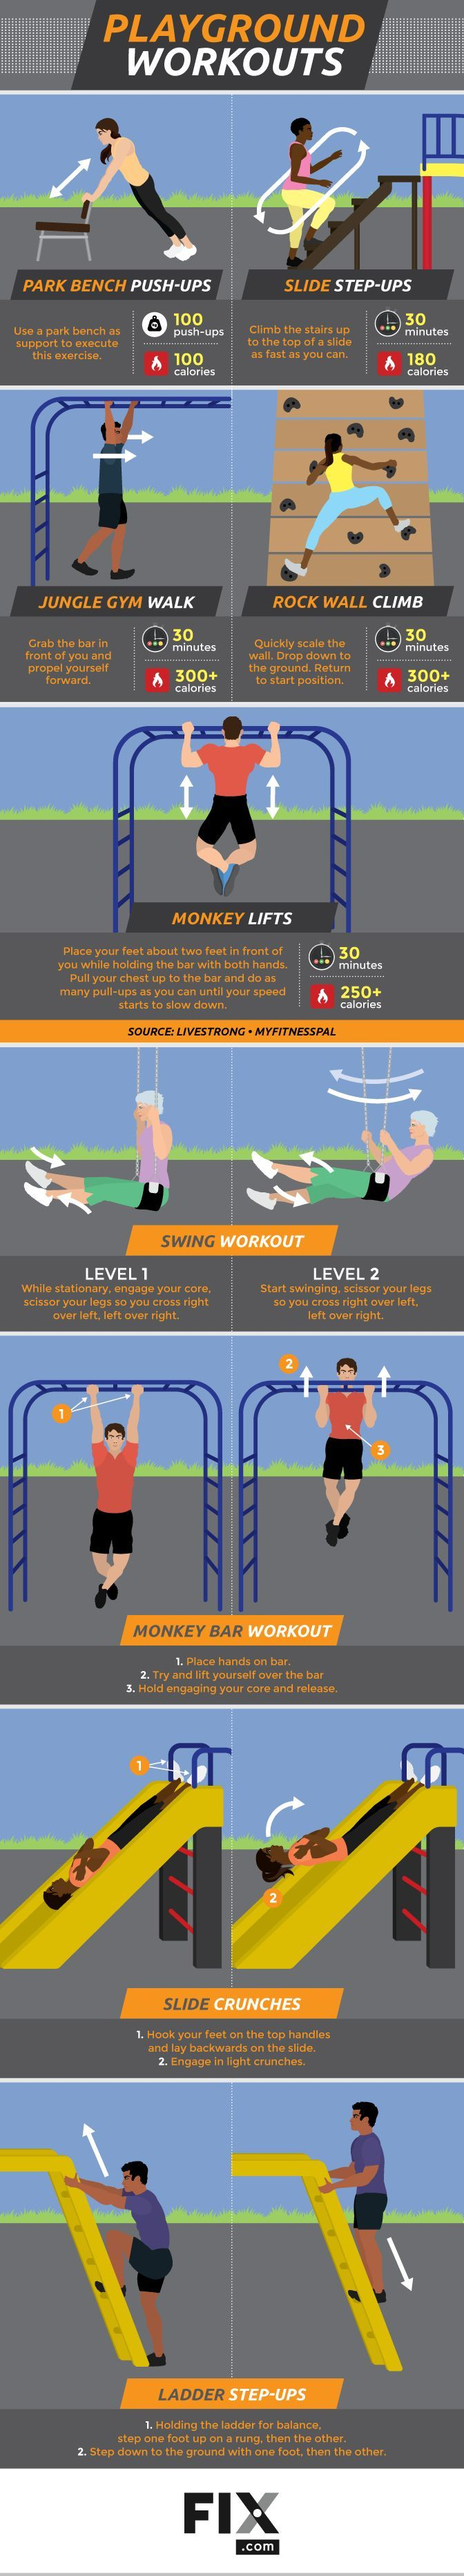 The Ultimate Playground Workout - FitFluential